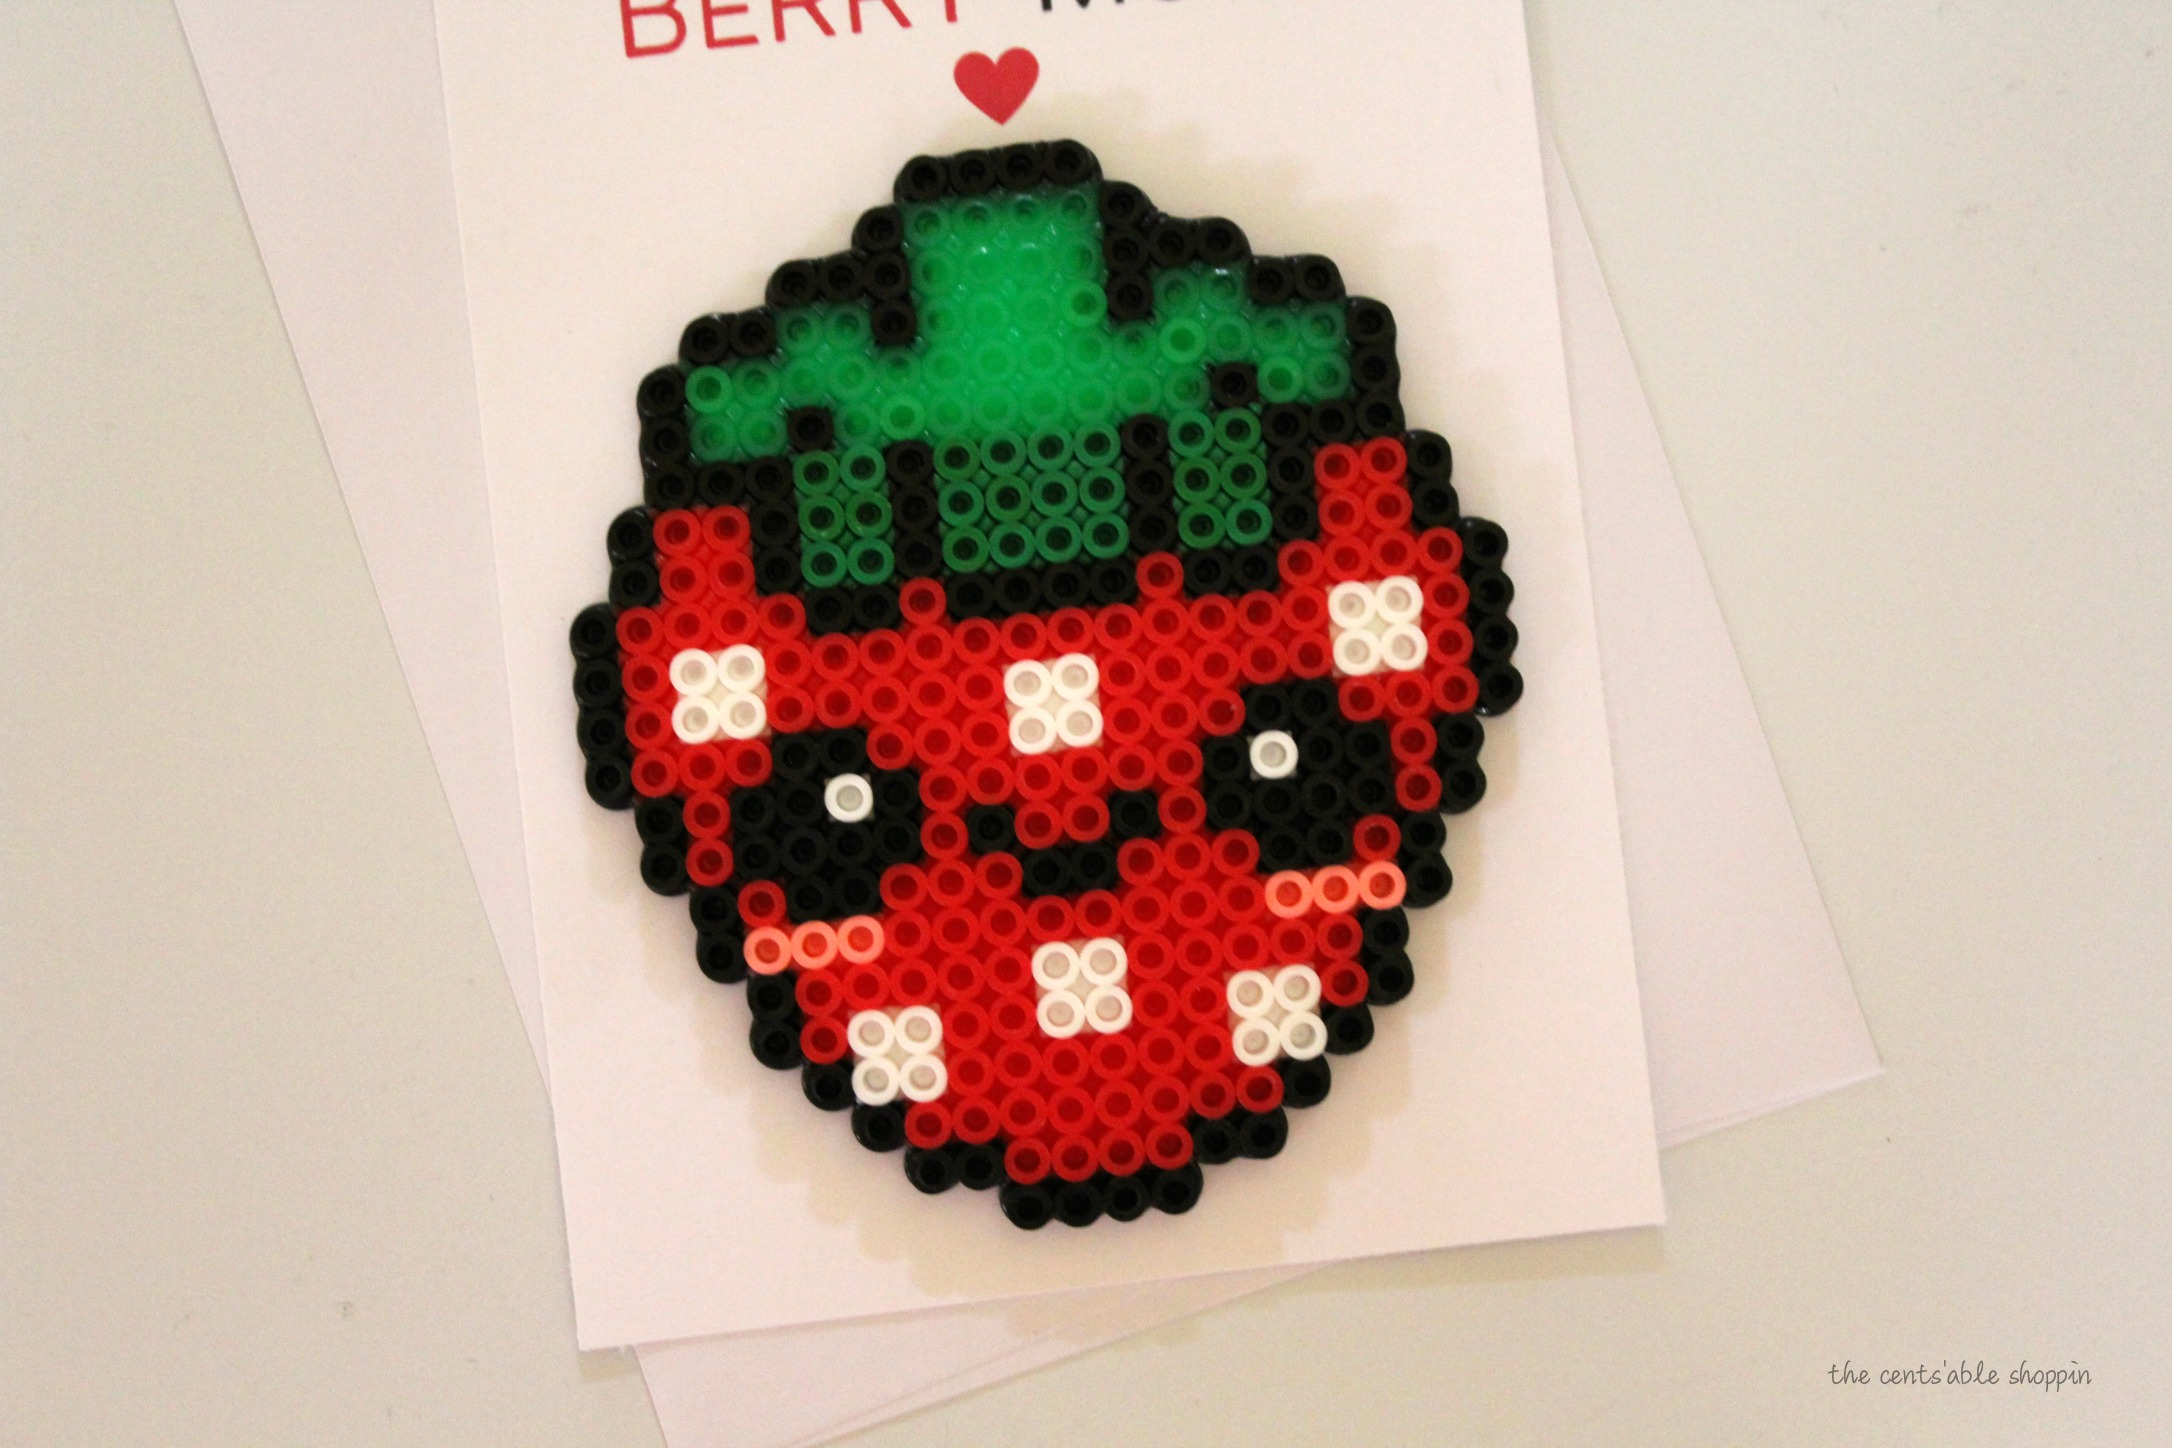 Strawberry Love Pun Card